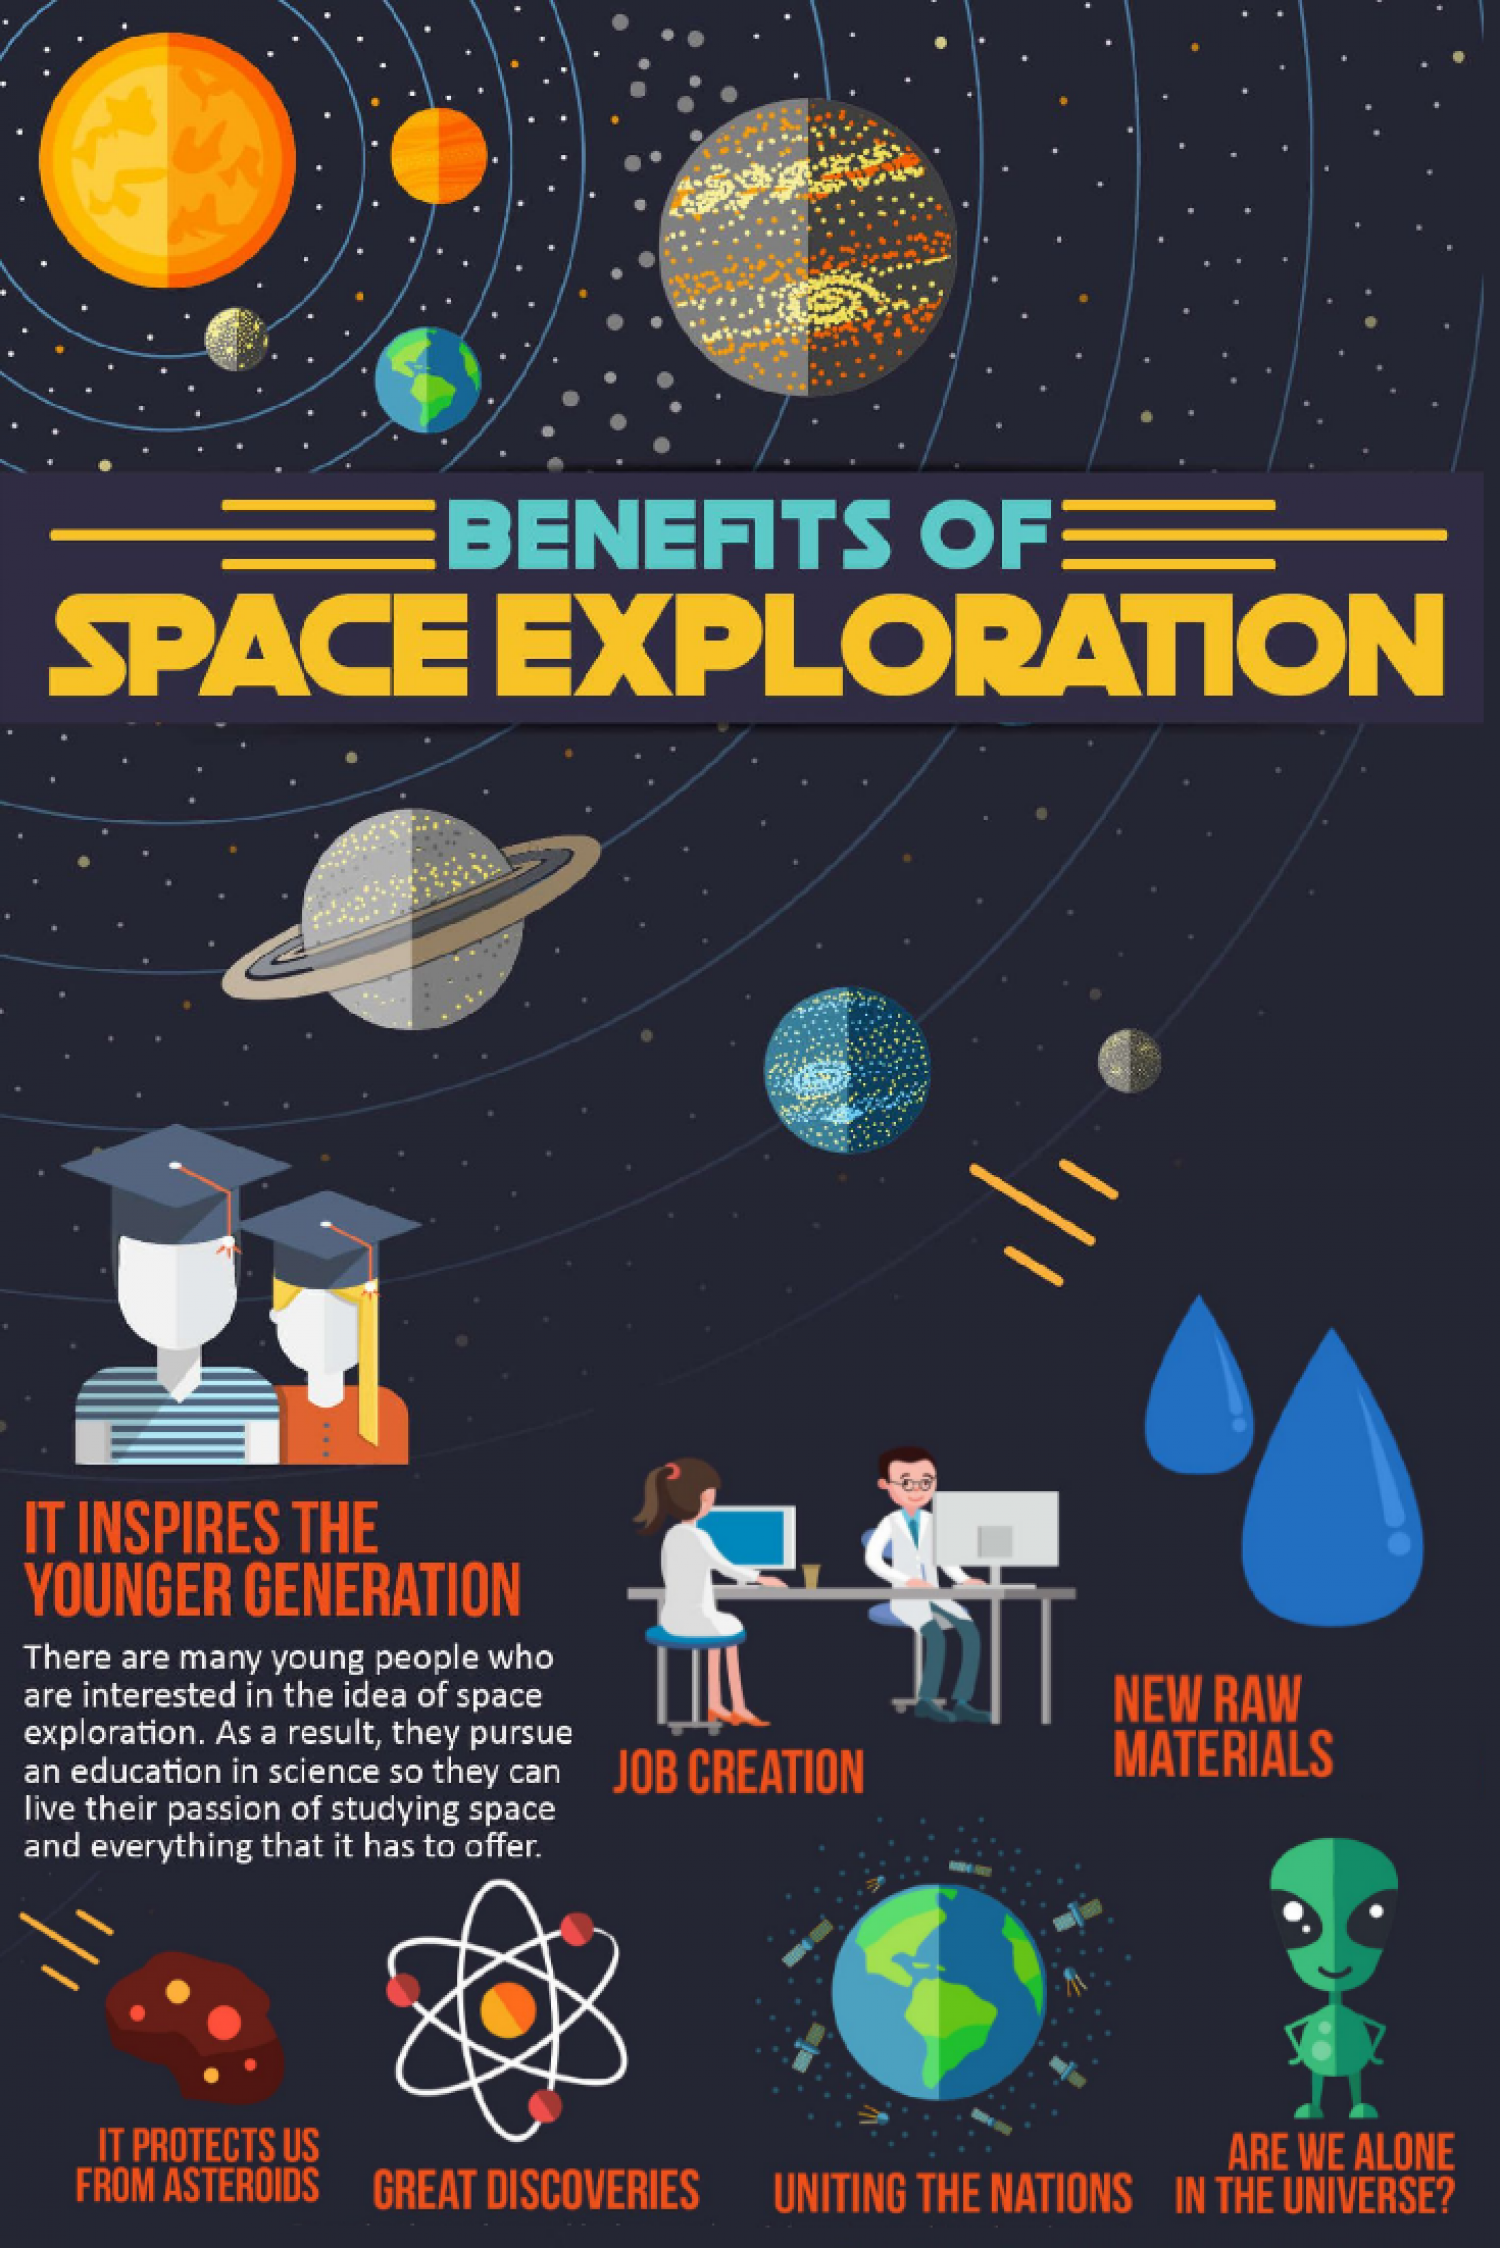 7 Benefits of Space Exploration Infographic